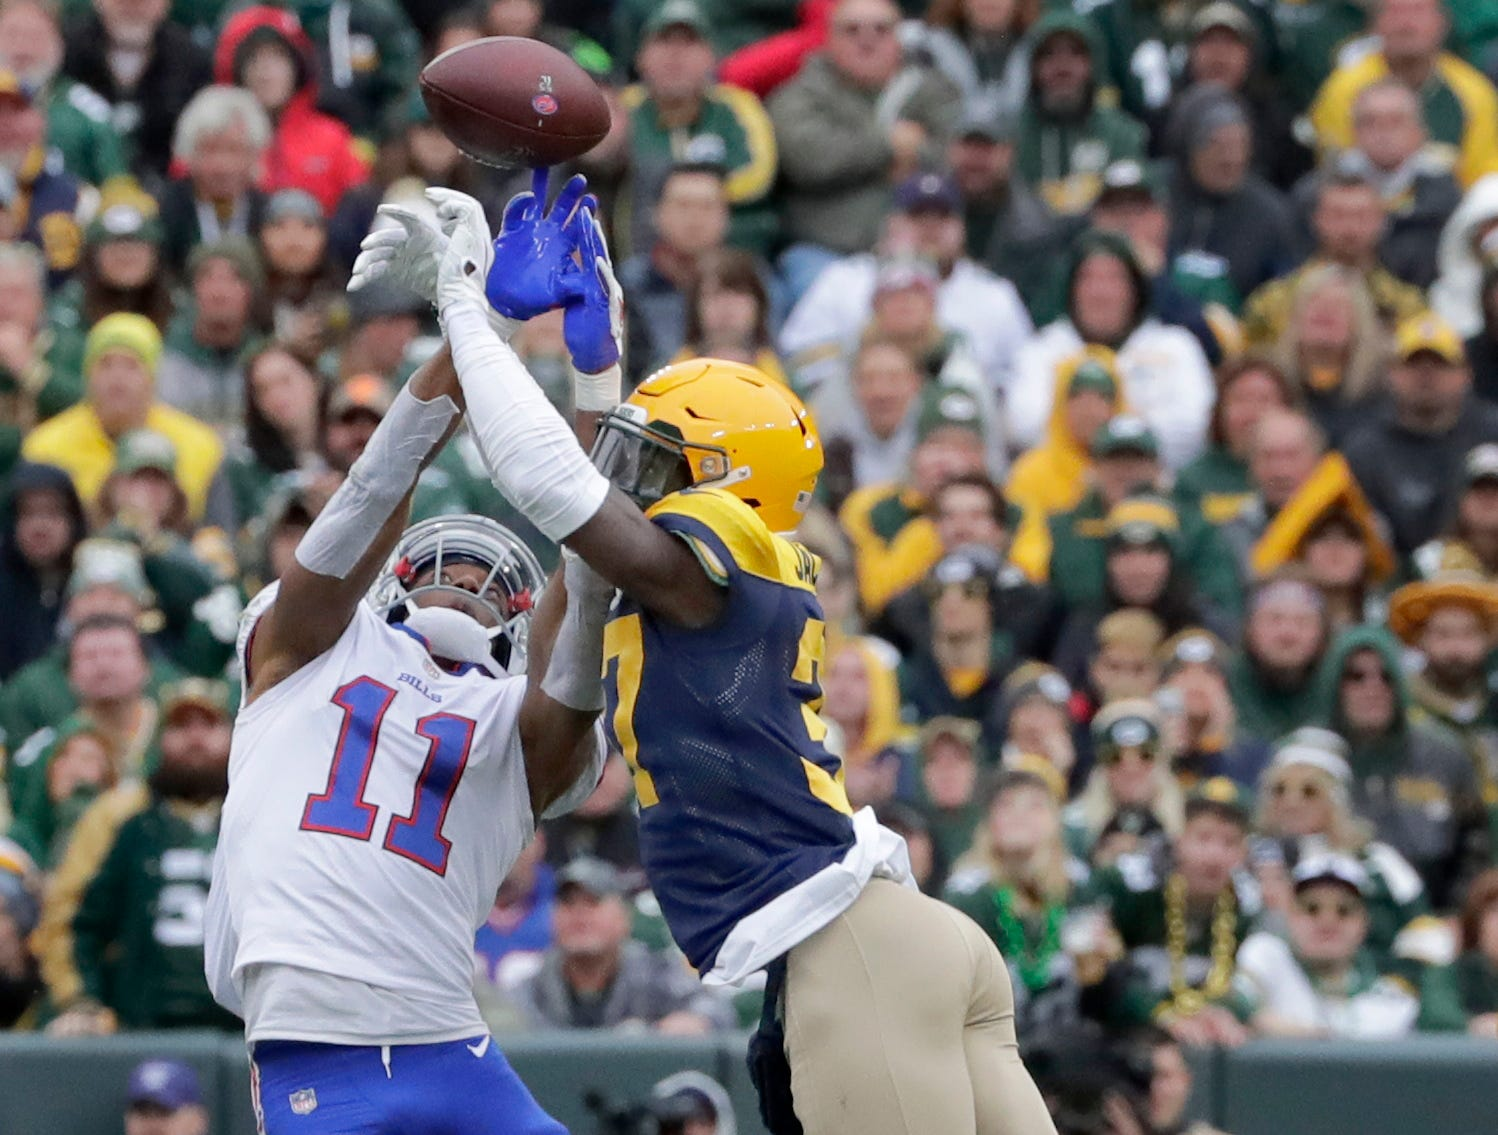 Green Bay Packers cornerback Josh Jackson breaks up a pass intended for Buffalo Bills wide receiver Zay Jones on Sunday, September 30, 2018, at Lambeau Field in Green Bay, Wis. 